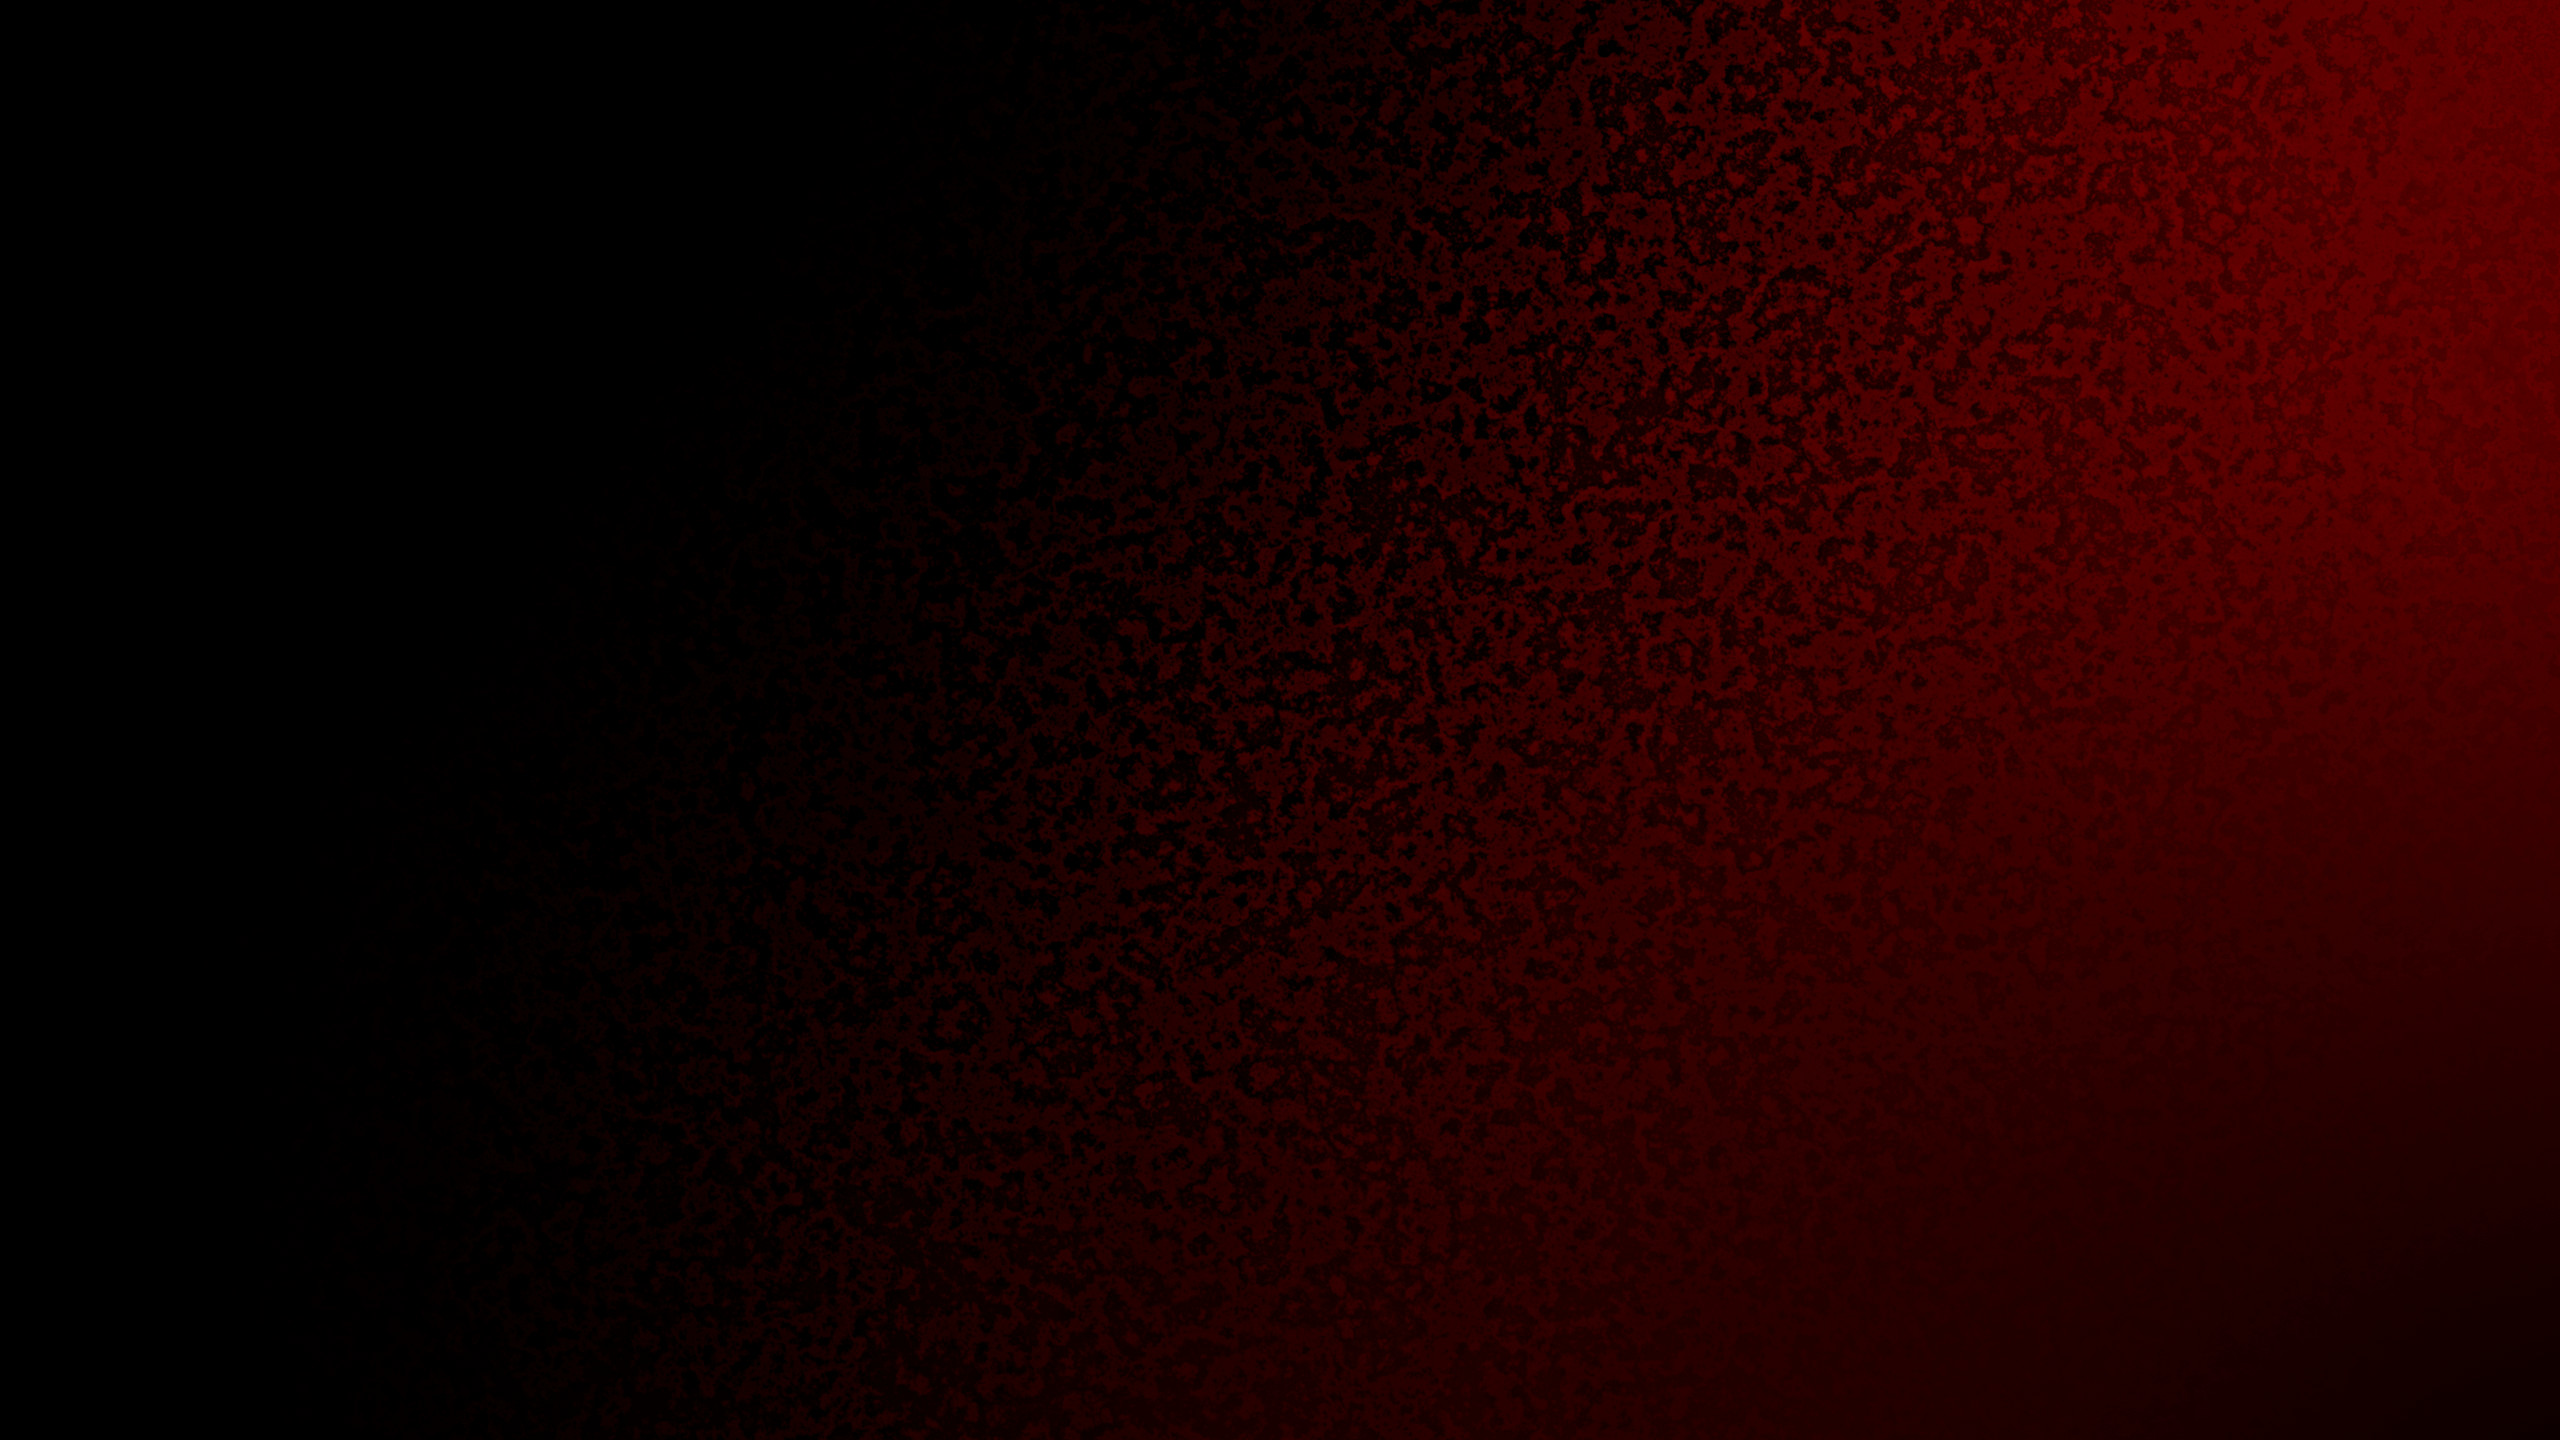 Red And Black Abstract Backgrounds – Wallpaper Cave